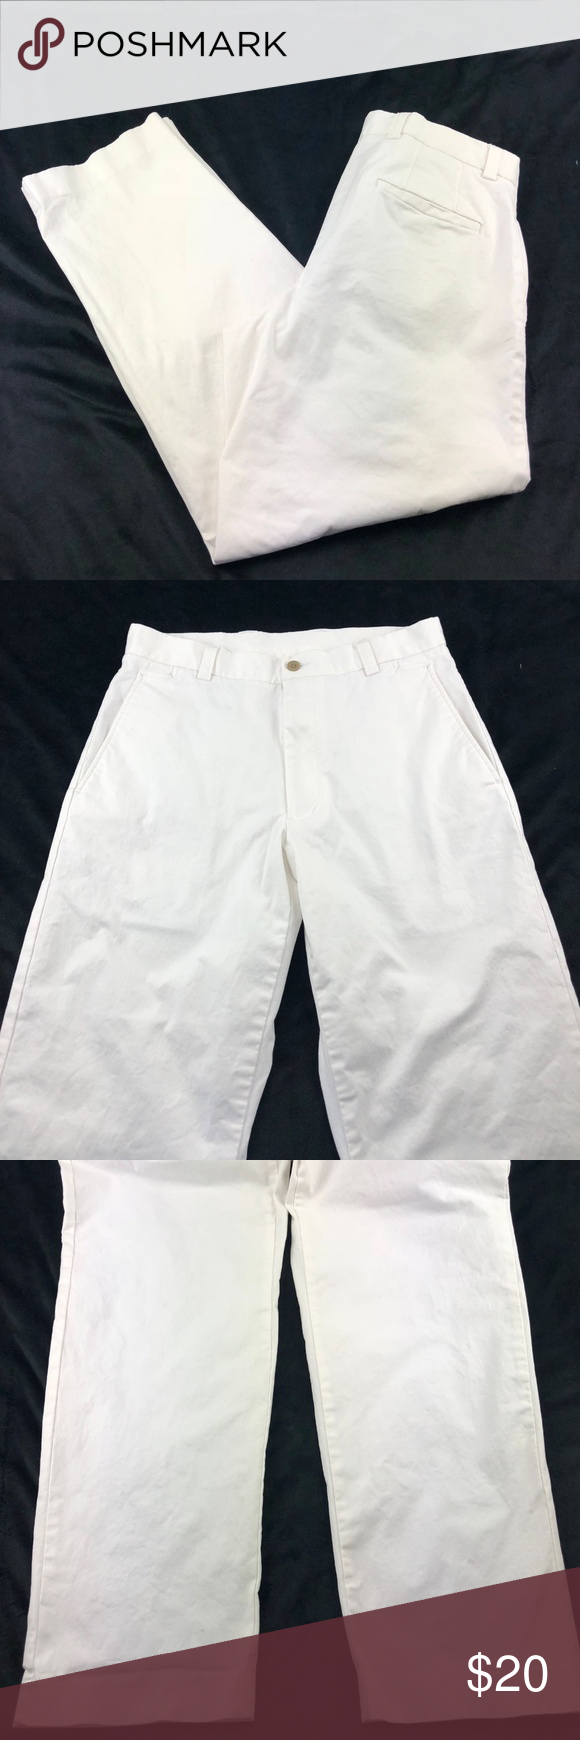 dce723756a Kenneth Cole Reaction Mens Chinos Pant White (O11) Kenneth Cole Reaction Men s  Chinos Pants